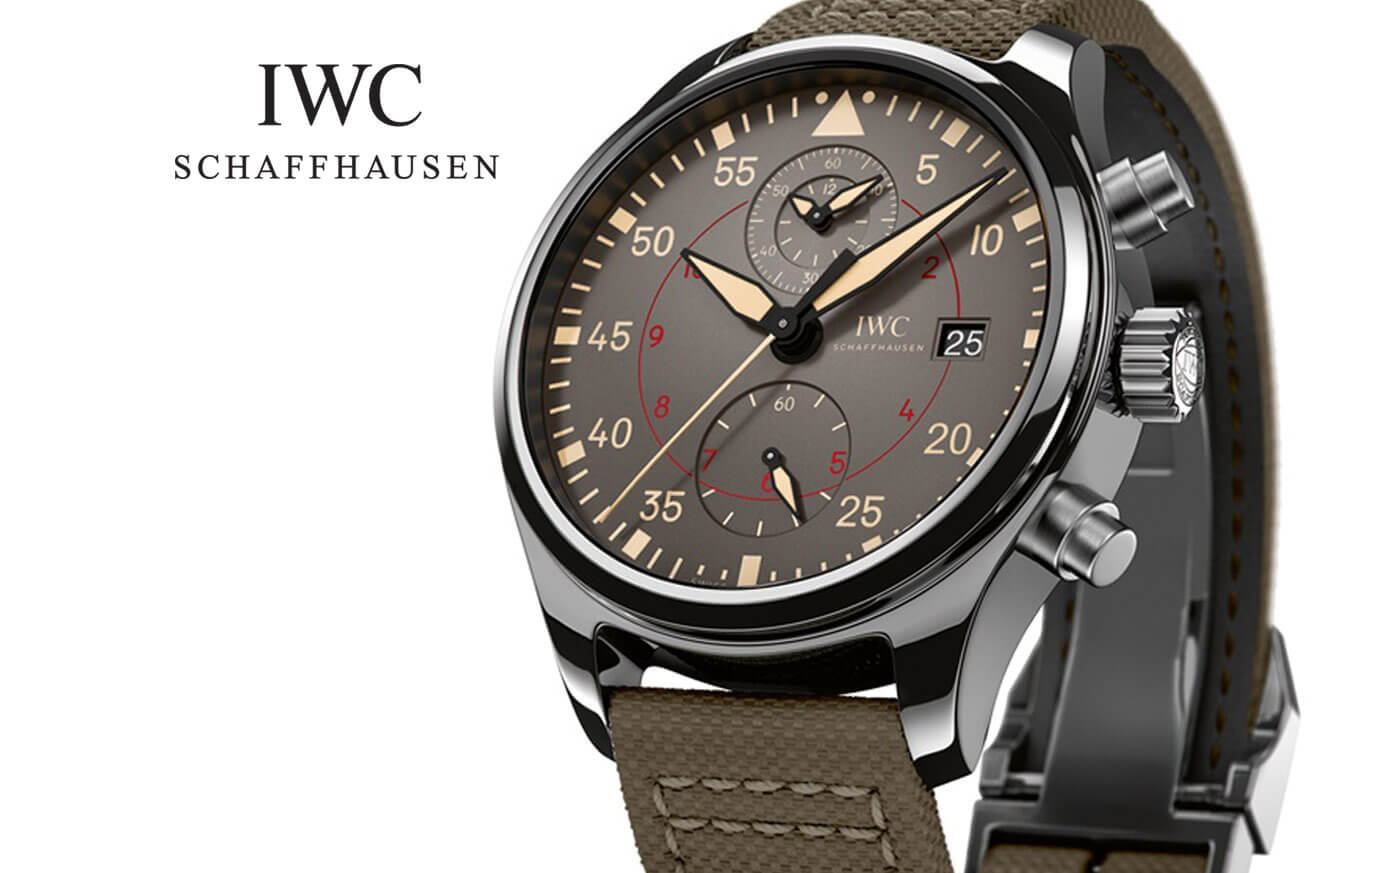 iwc-kf-featured-image